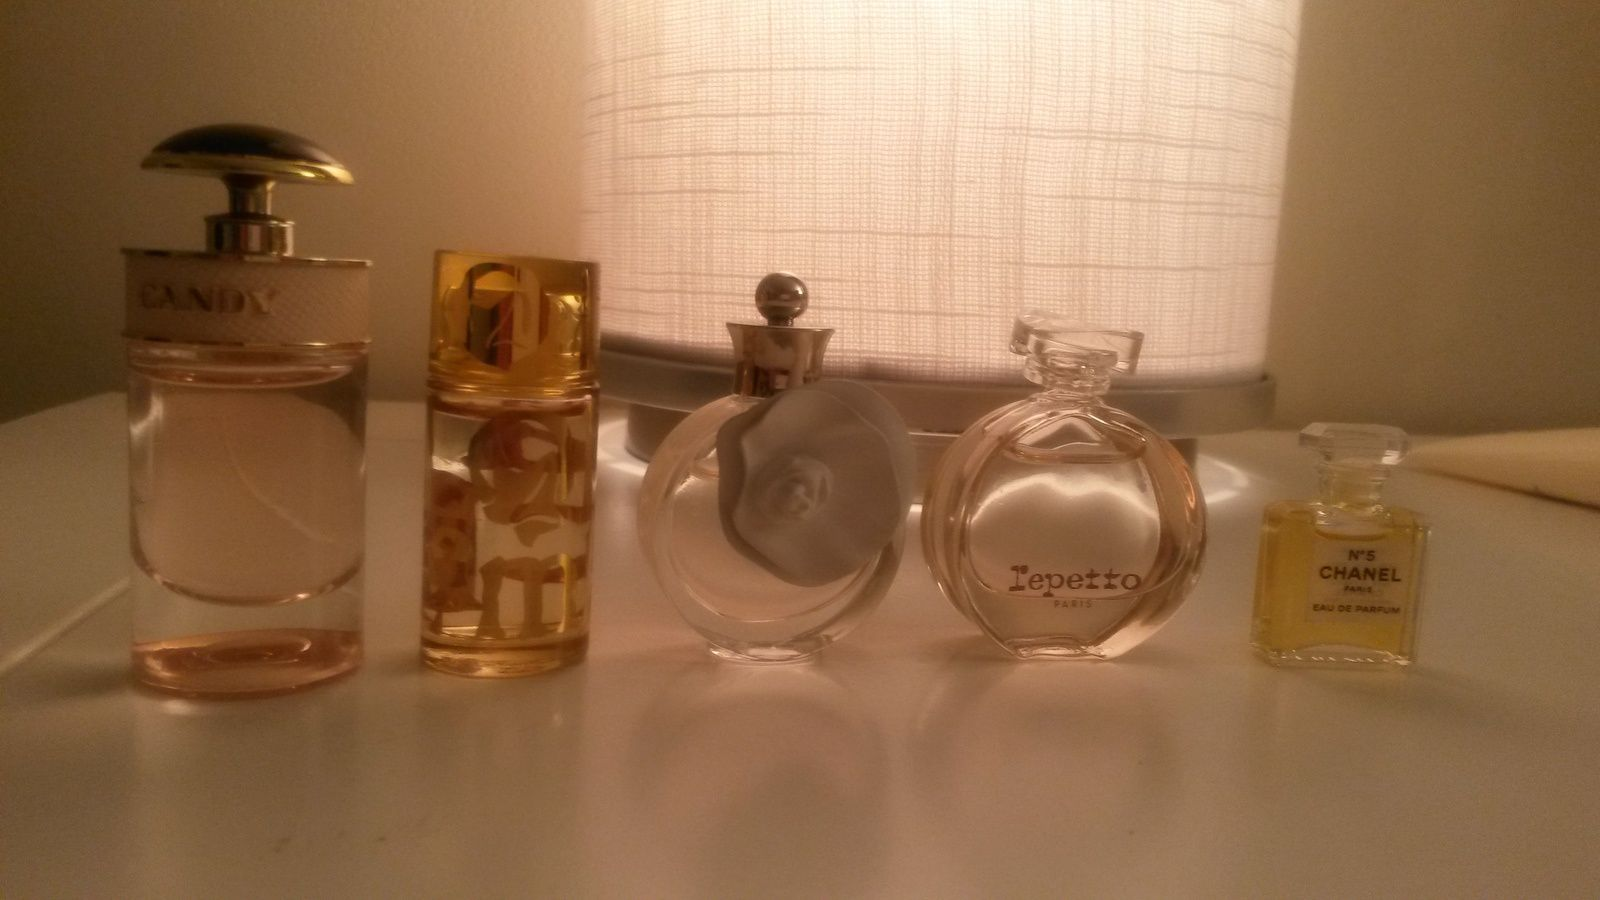 mes mini parfums :  candy de cartier, lolita lempicka, valentino, repetto, chanel n°5